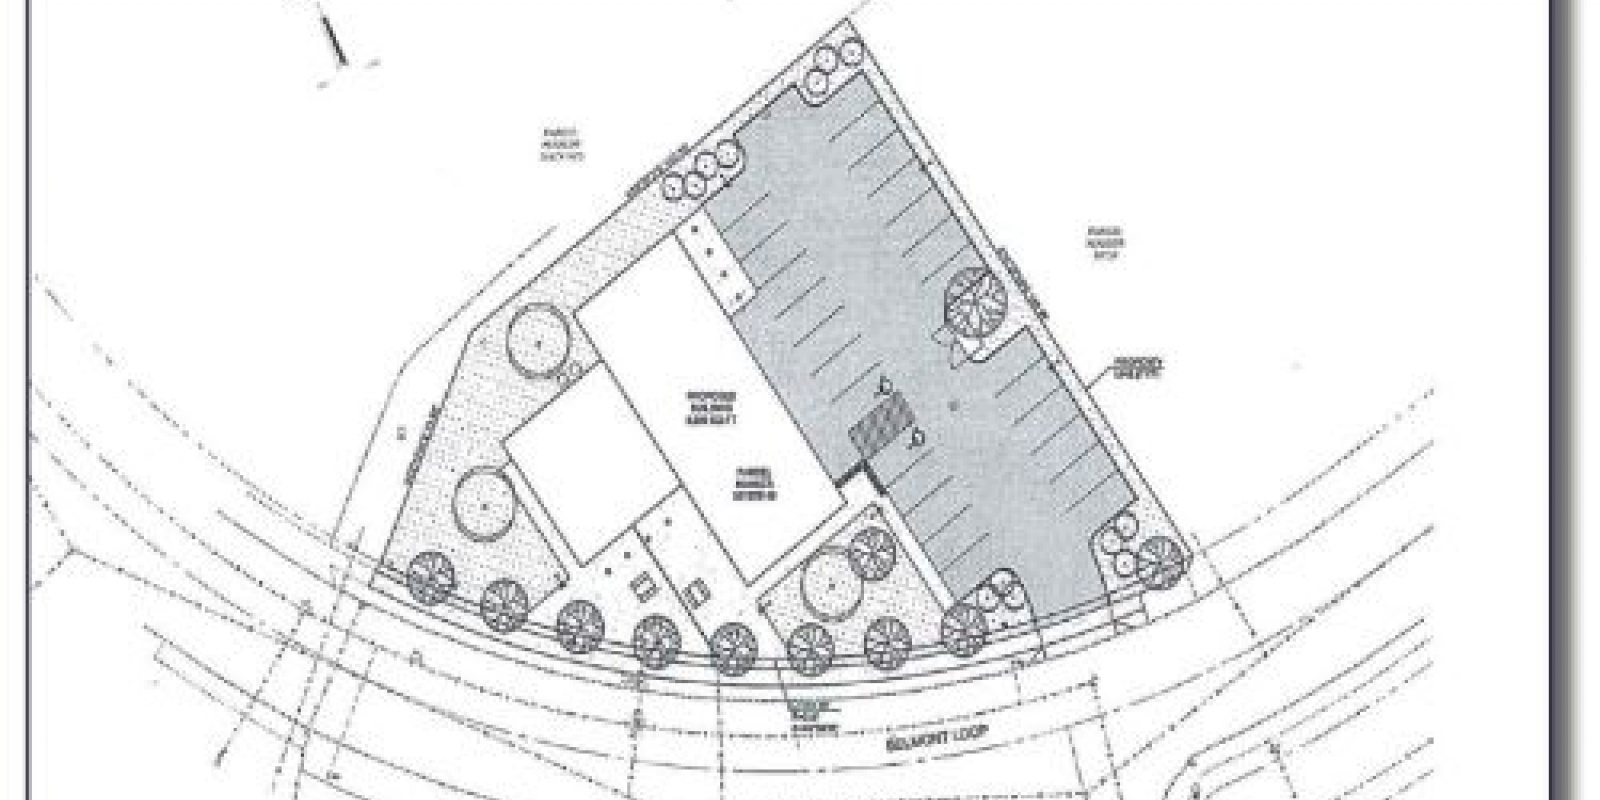 Previously Approved Site Plan